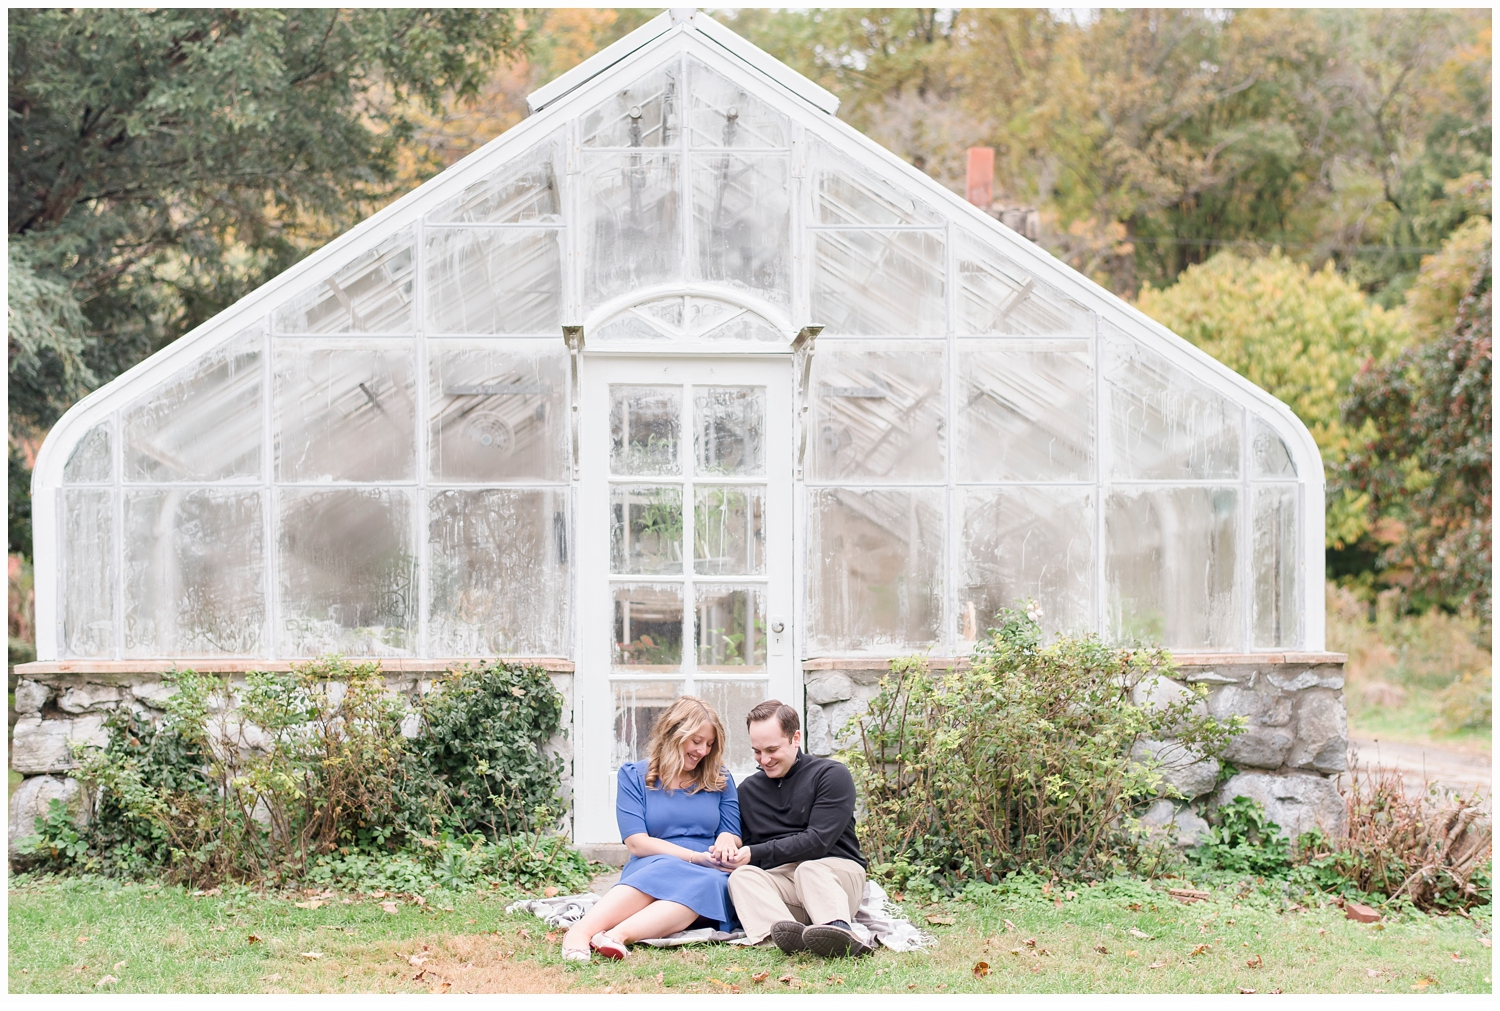 a couple sitting in front of a pretty green house